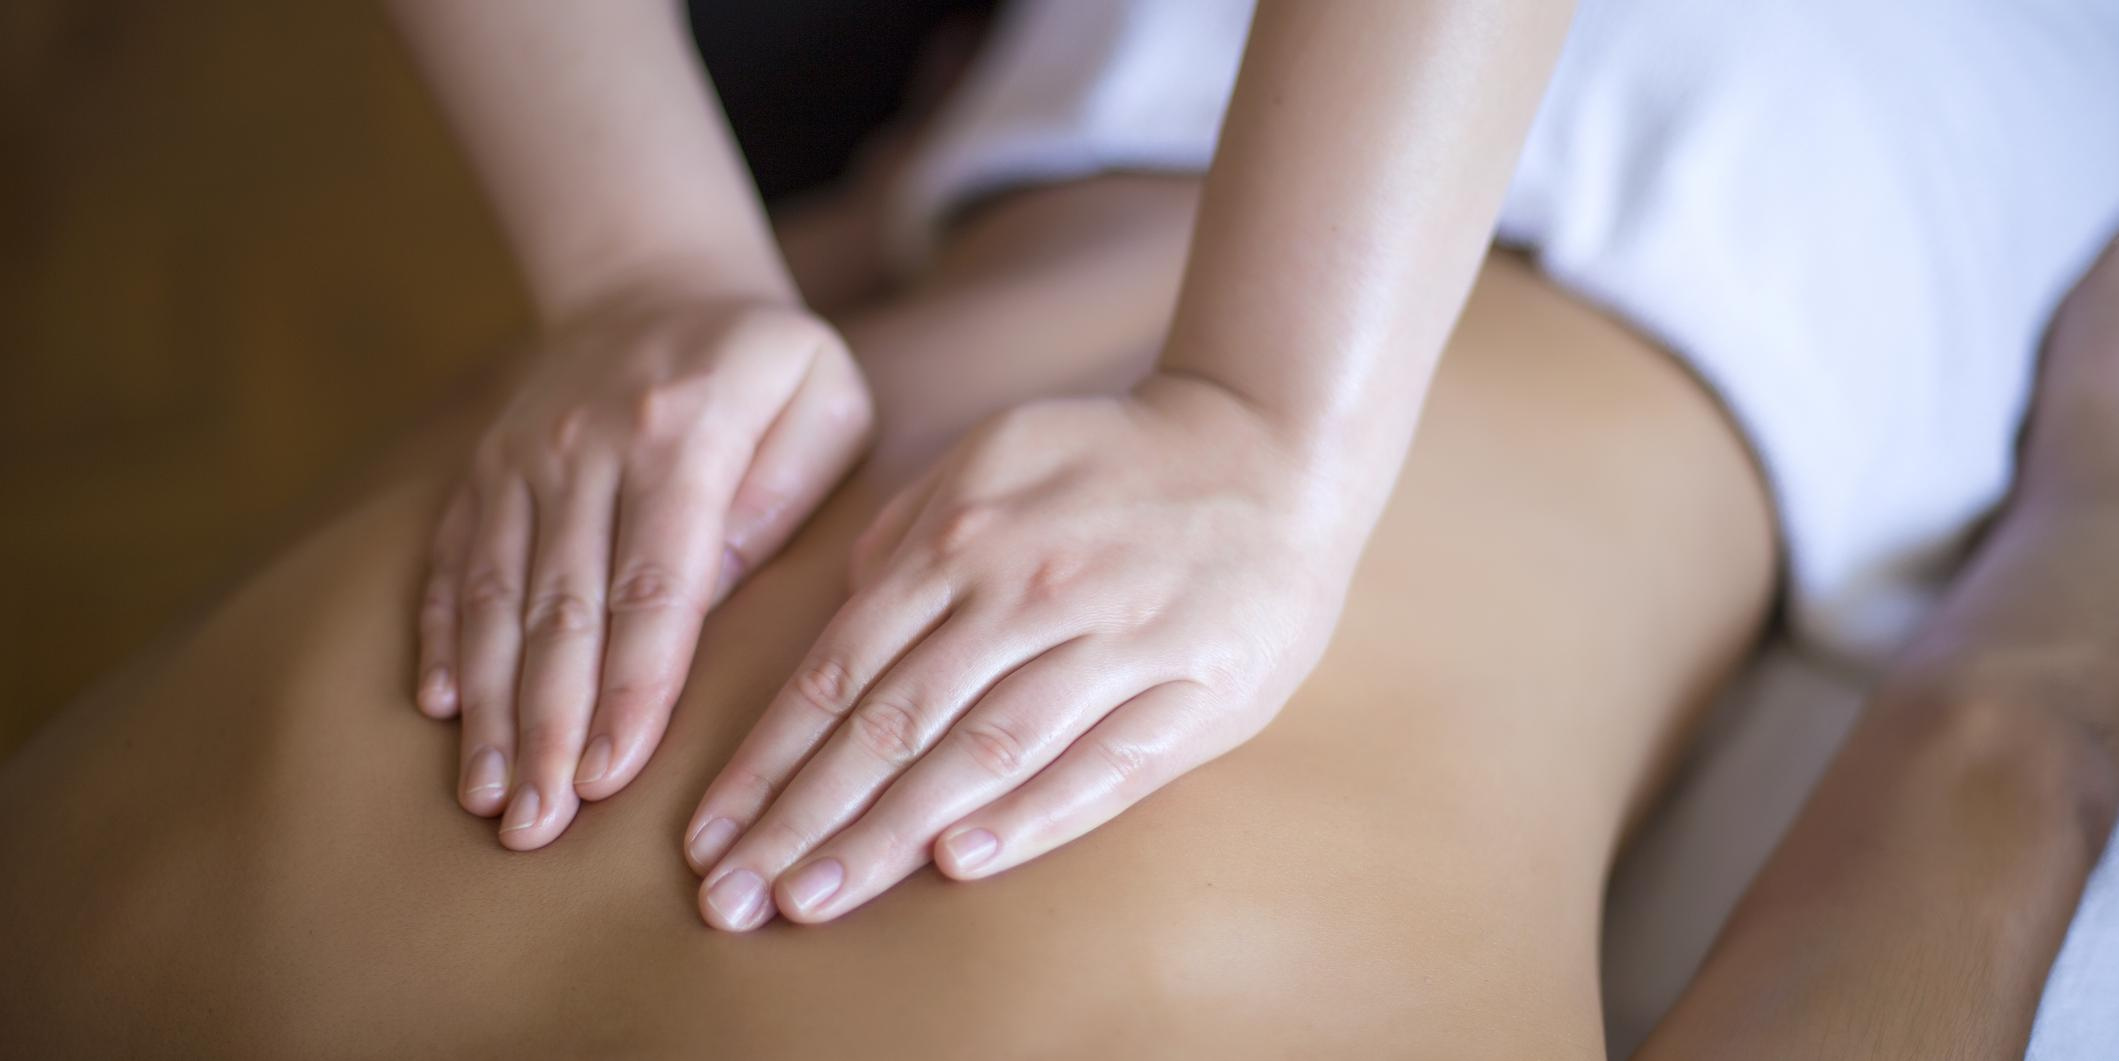 massage therapist hands on someone's back